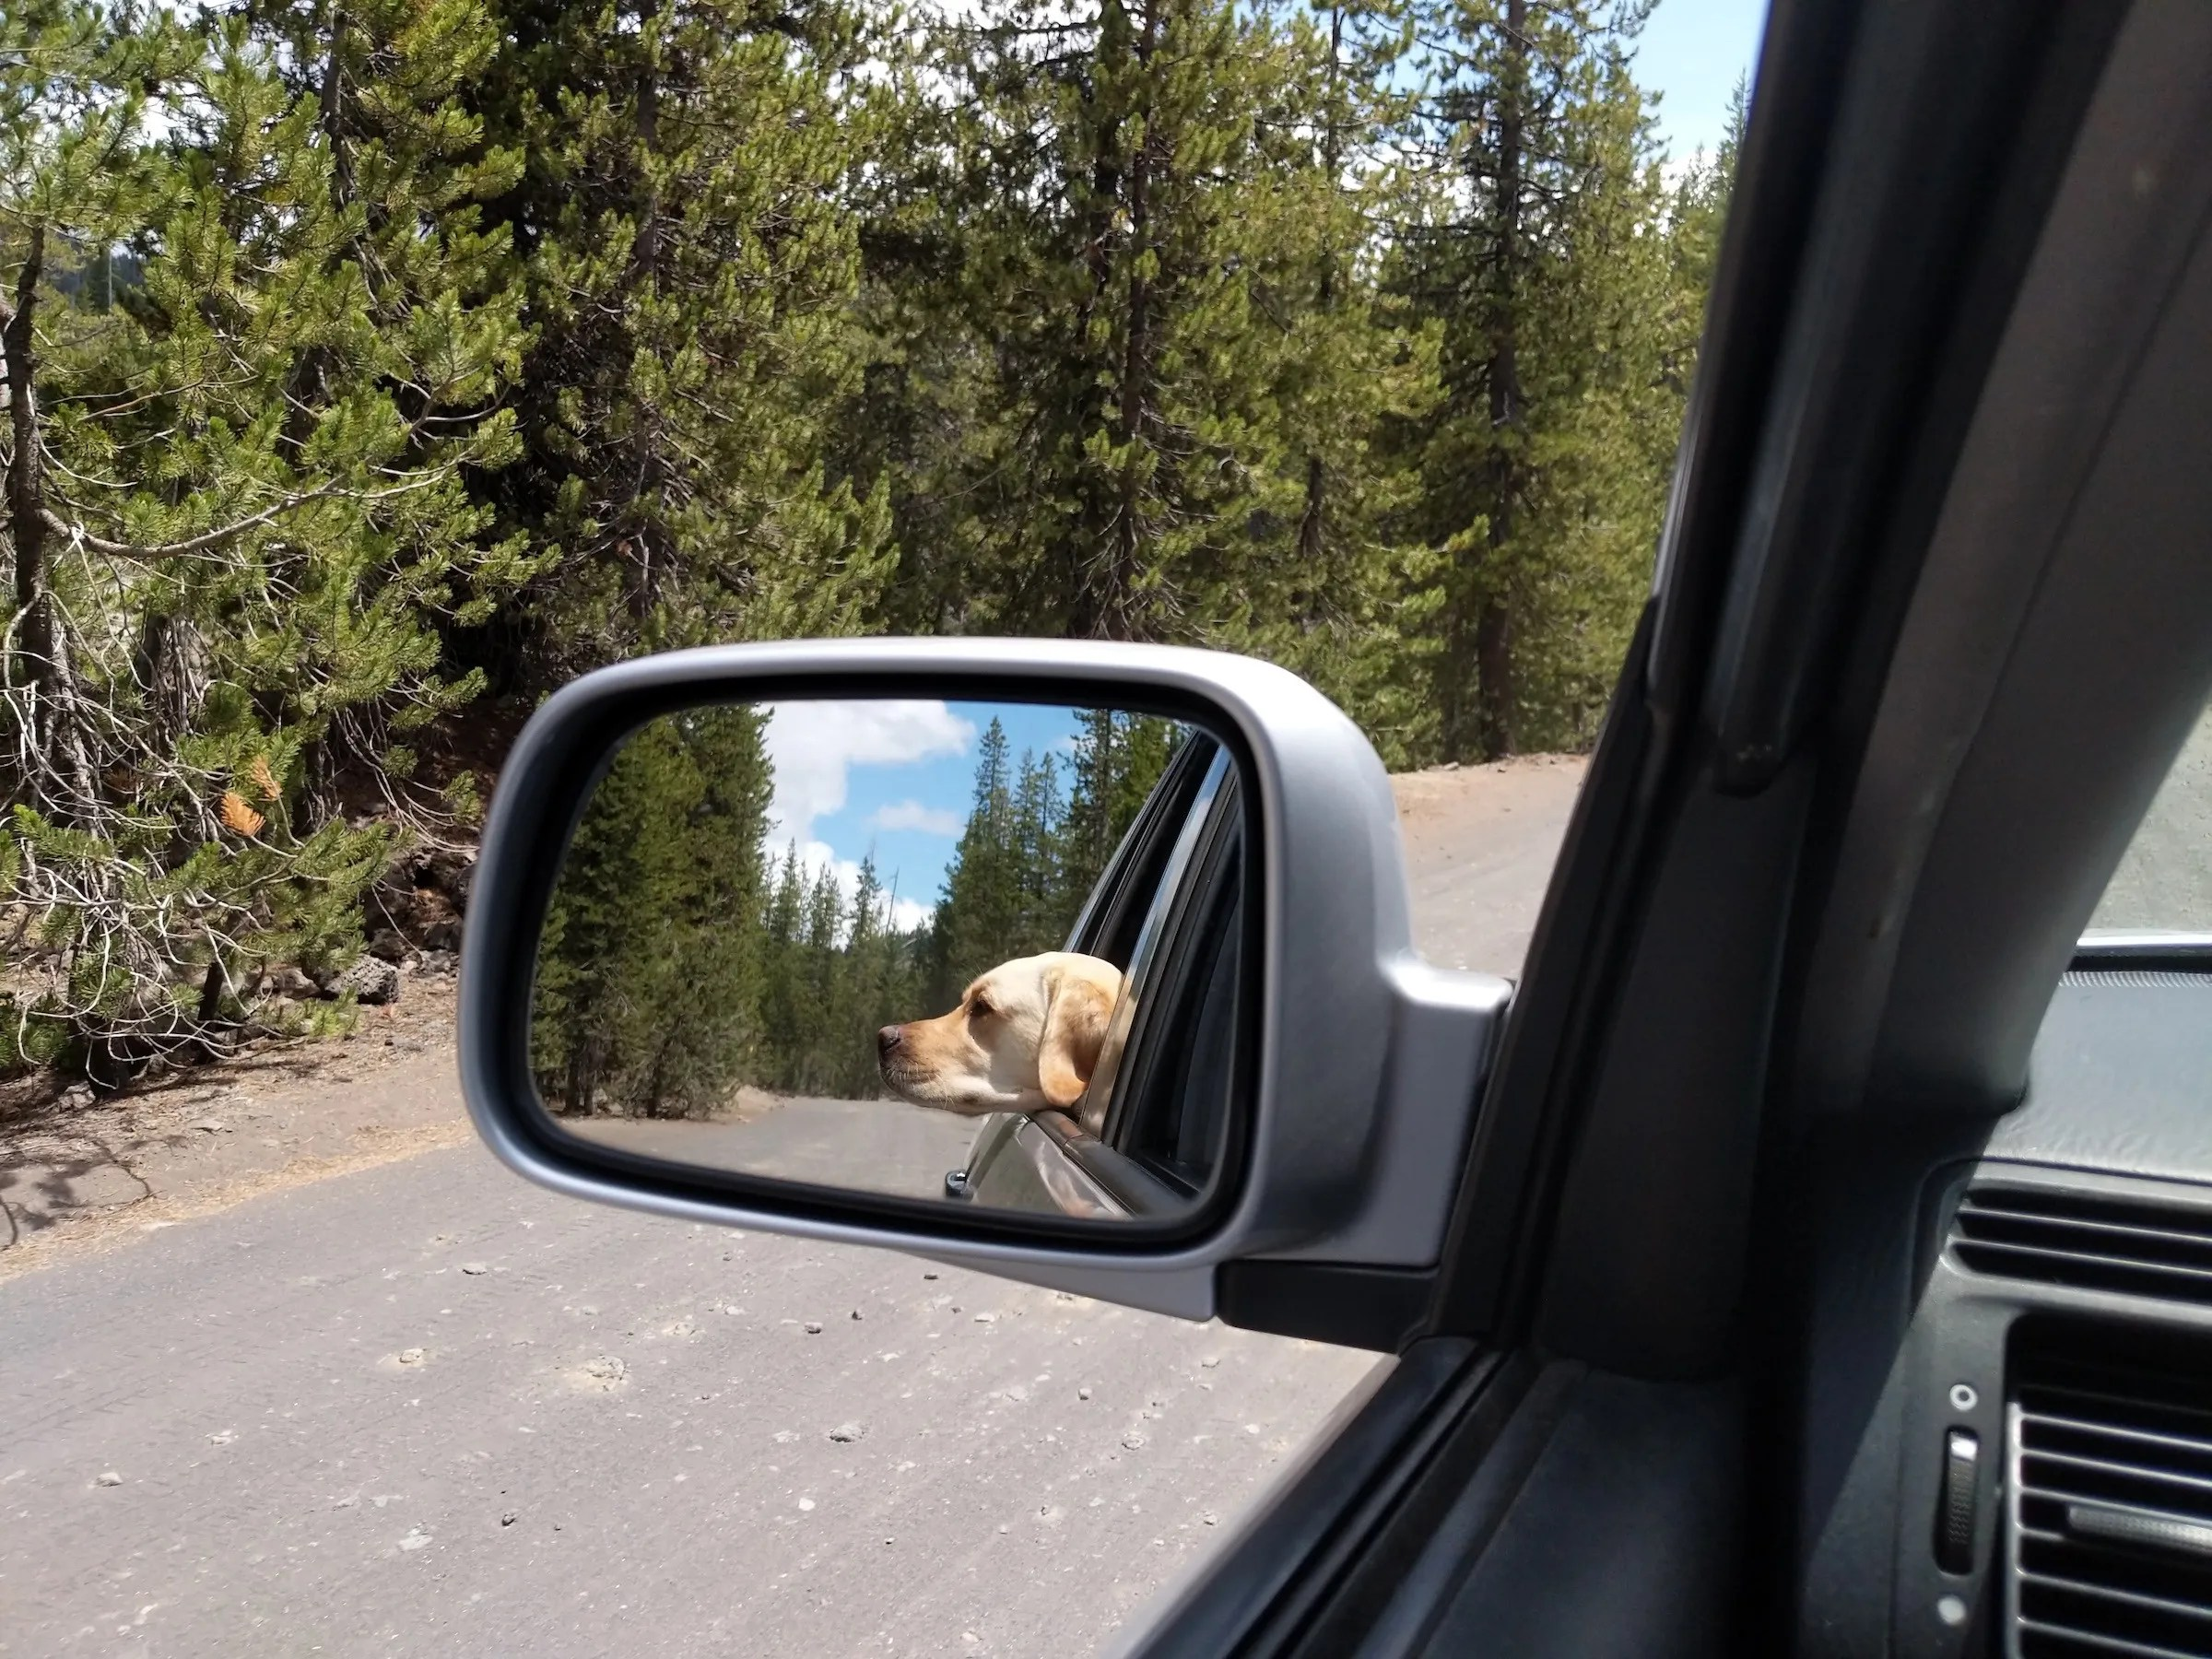 Gilligan sniffing the air. We must be getting close to Sparks Lake.